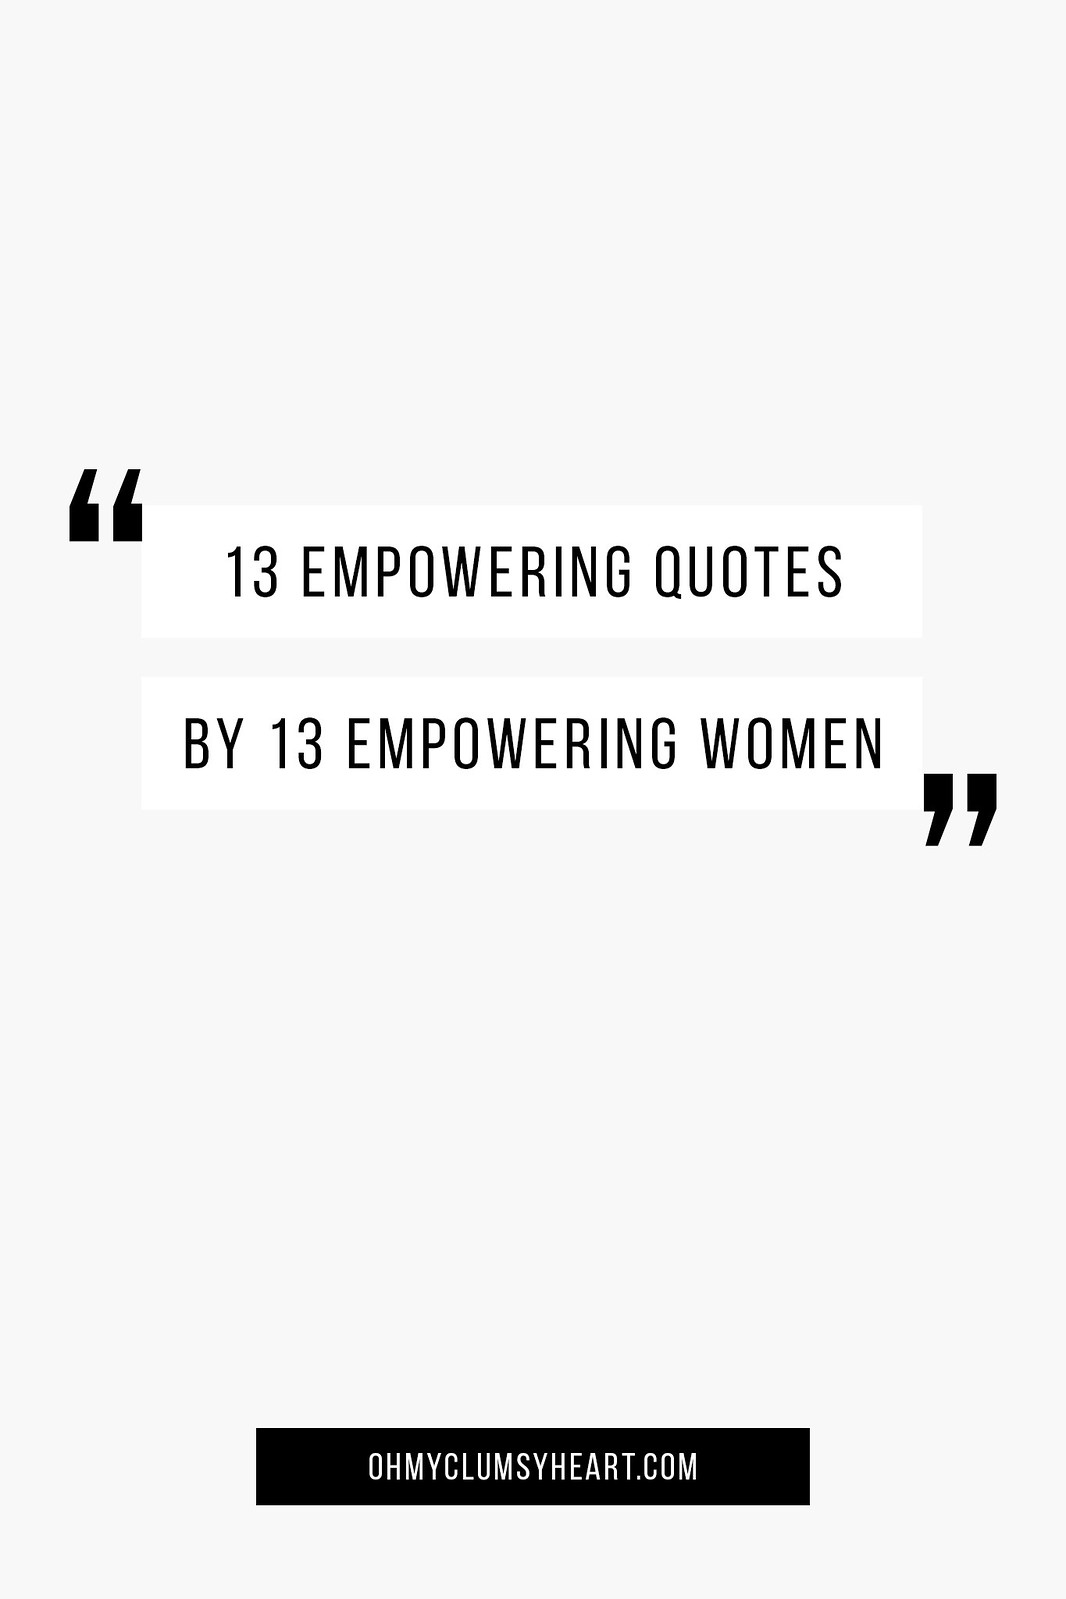 Empowering Women Quotes 13 Empowering Quotes13 Empowering Women  Oh My Clumsy Heart